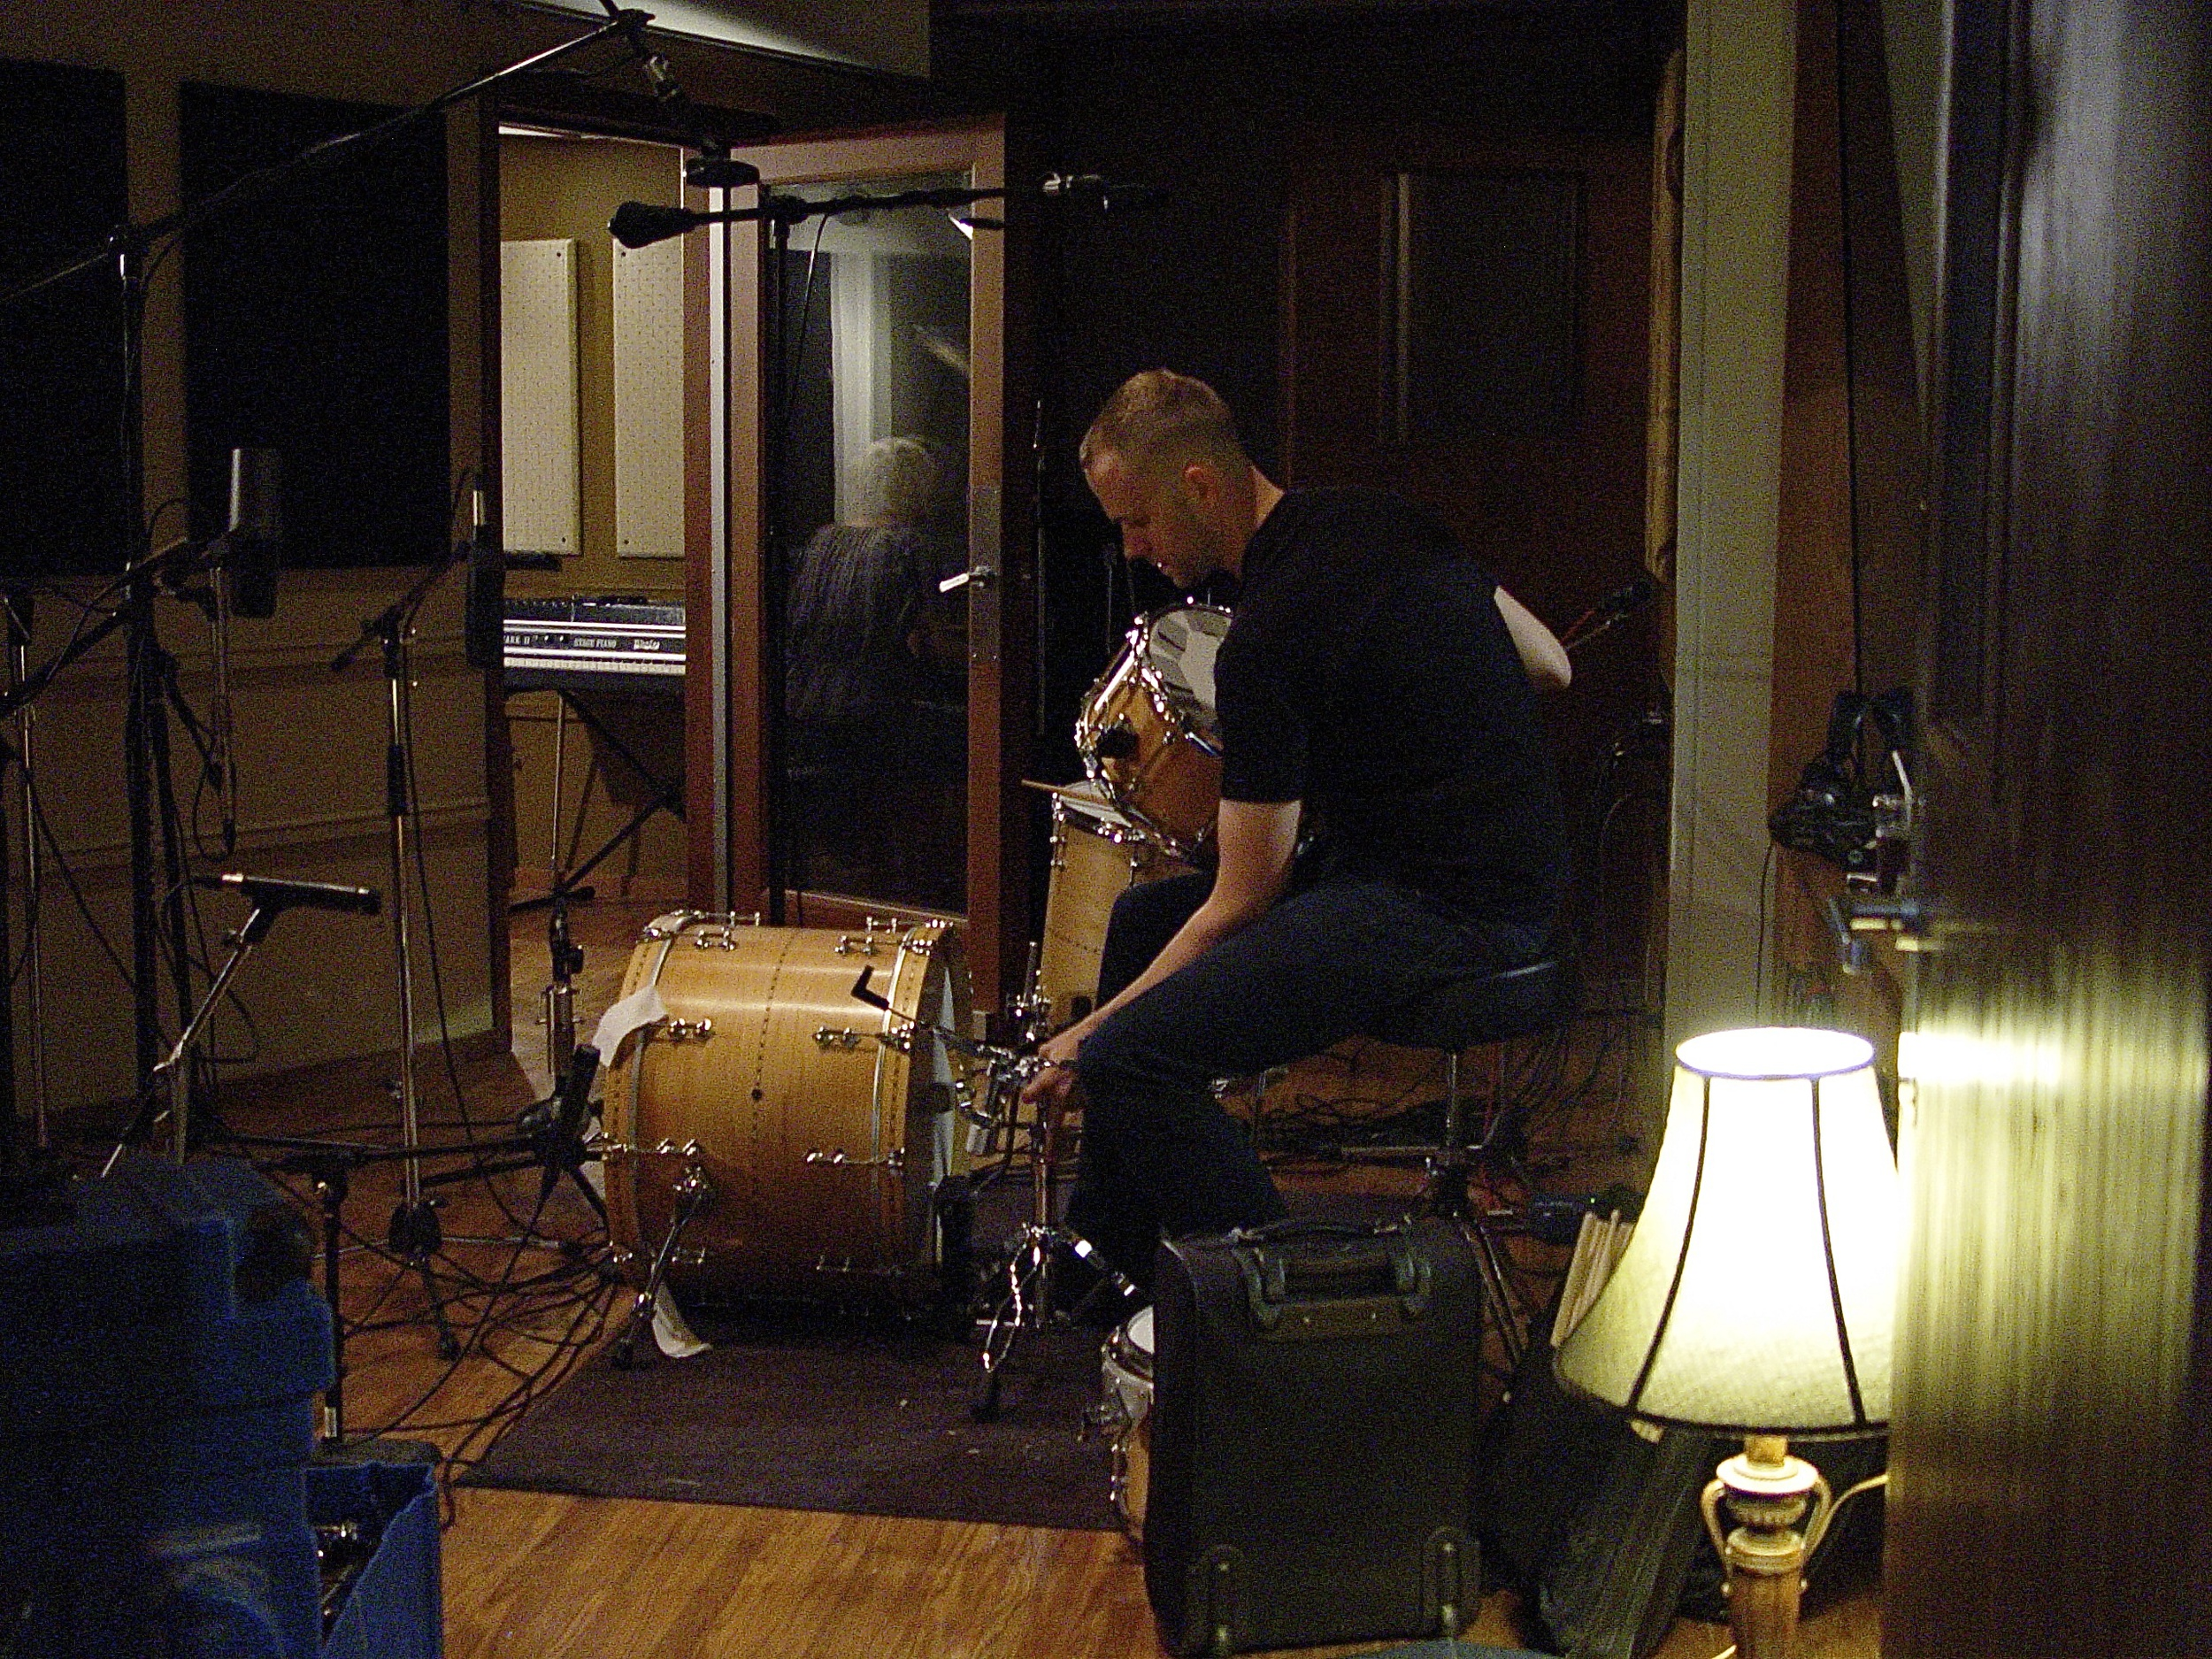 Jerry Roe on drums